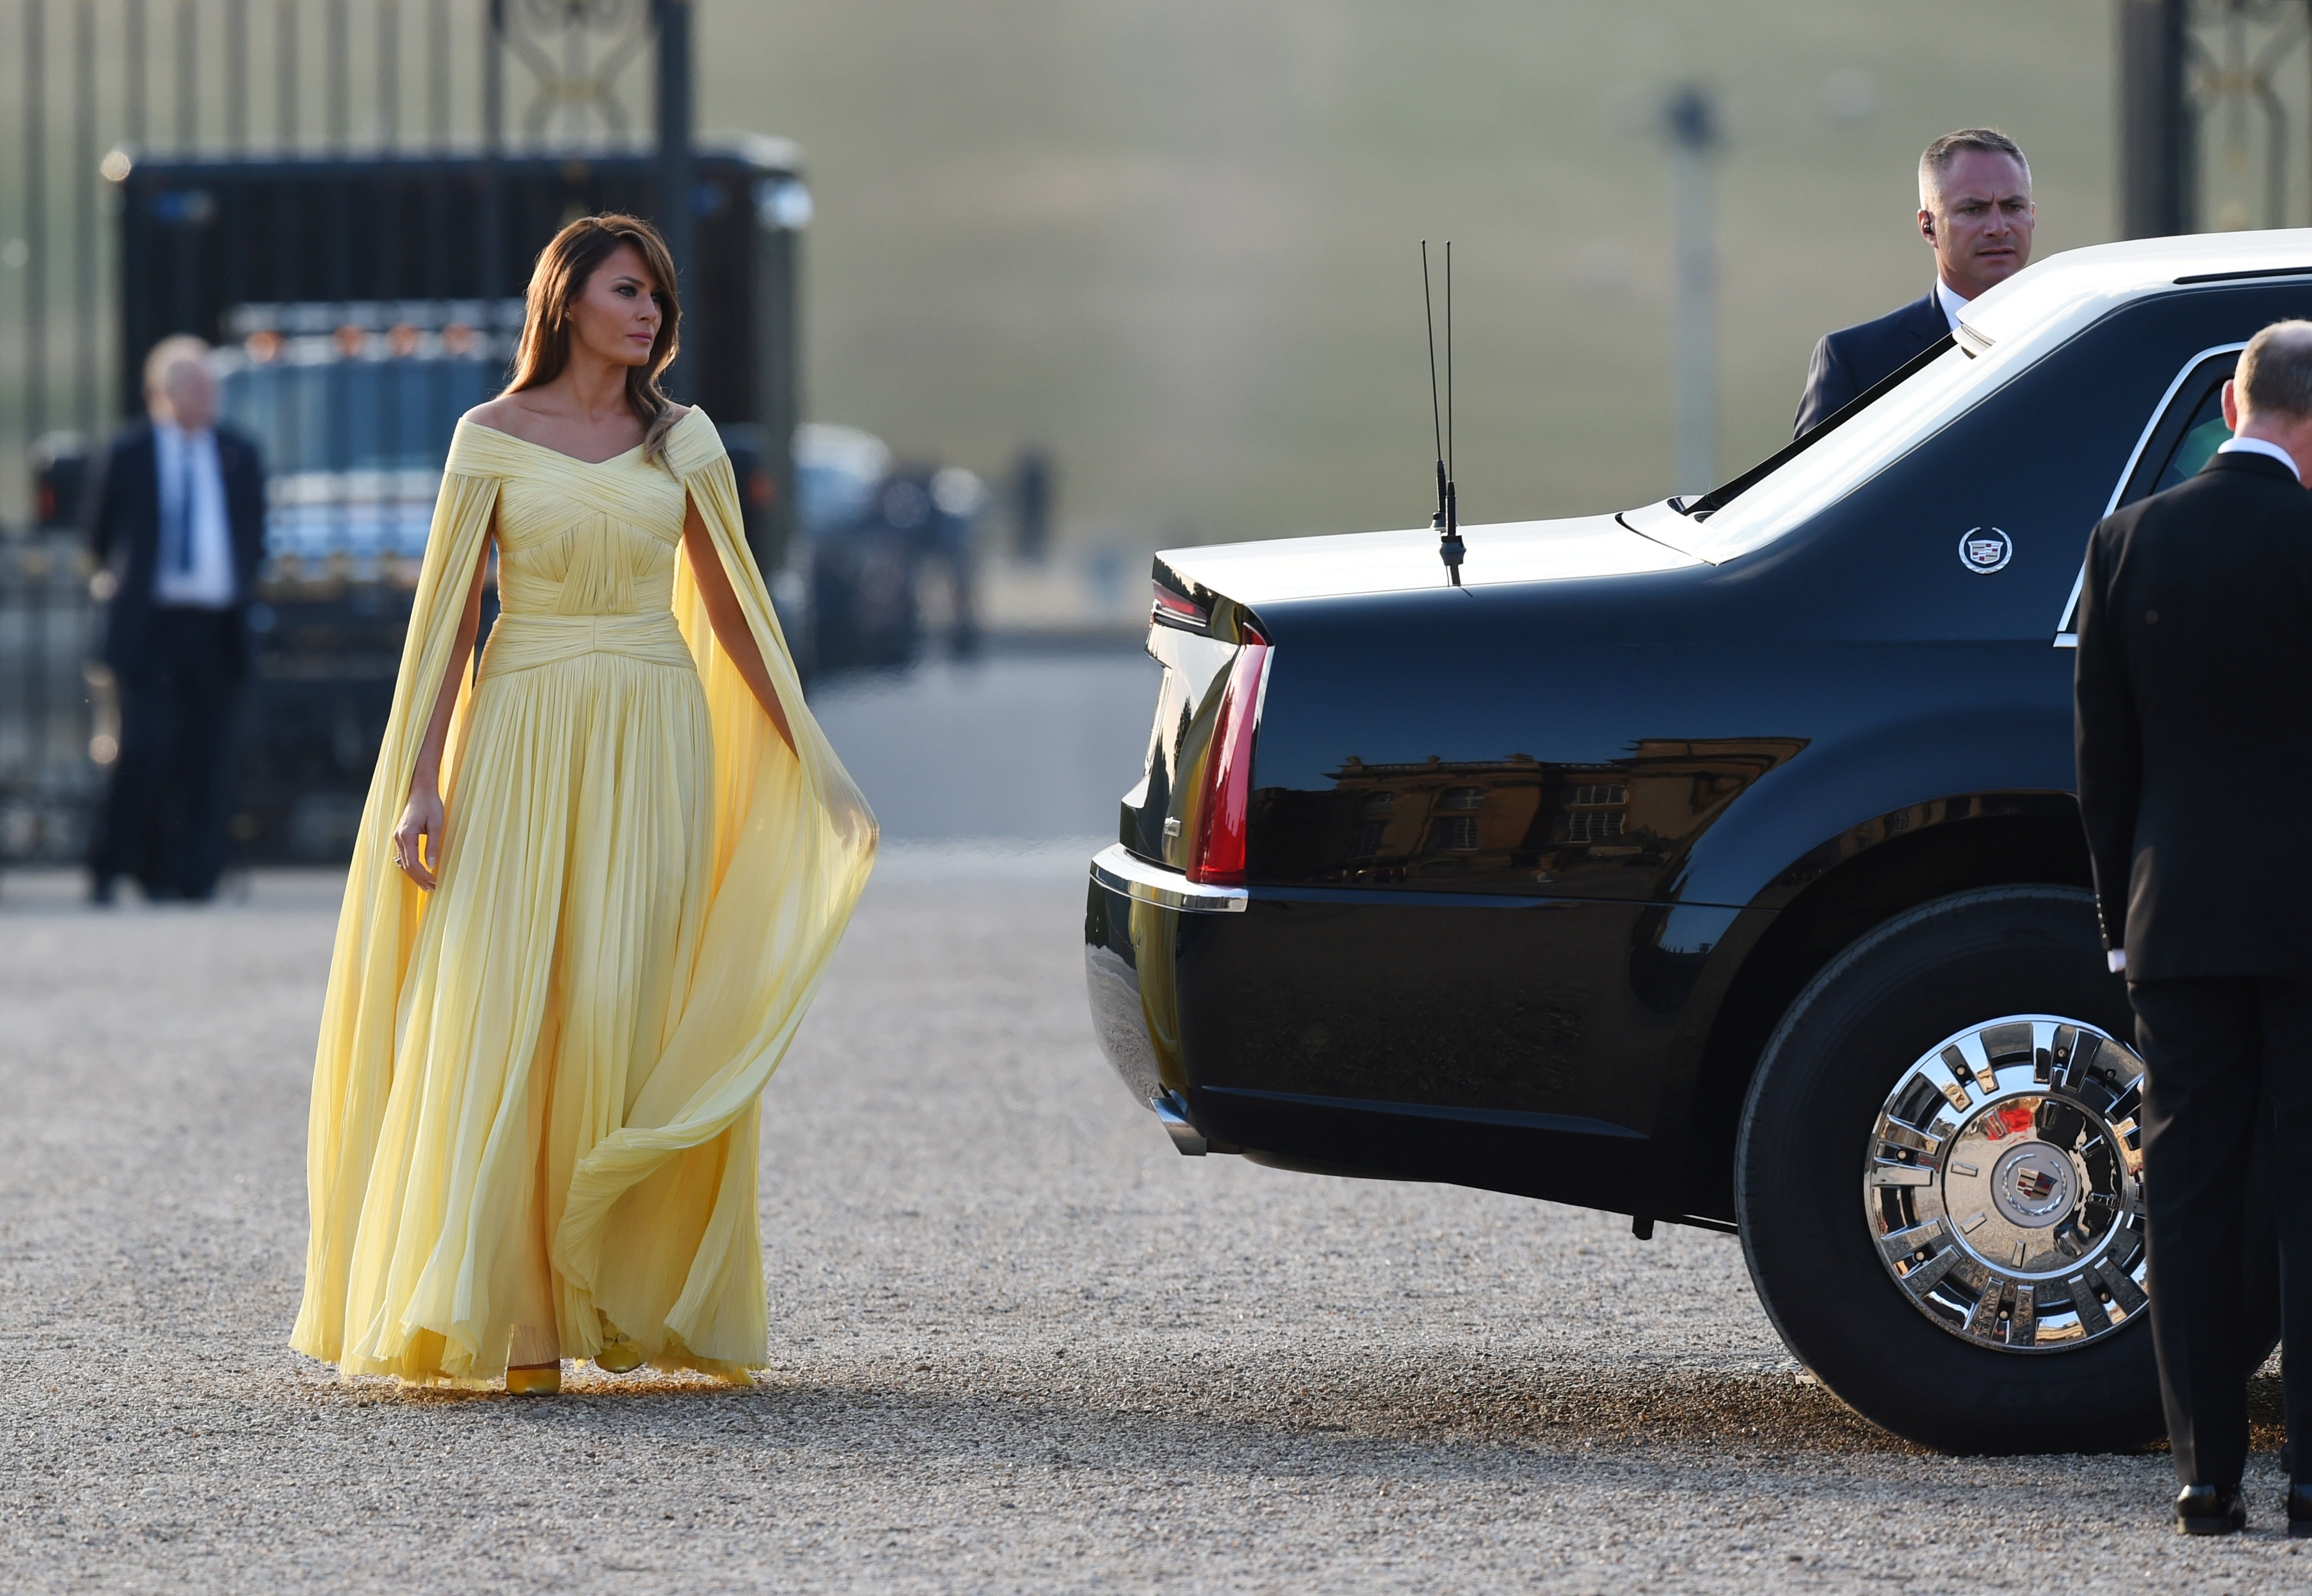 """<p>US First Lady, Melania Trump, rarely puts a foot wrong in the fashion stakes (unless she's wearing a graffitied Zara jacket) and for an appearance this week at a black-tie dinner in the UK, her style spotlight shone bright.<br /> <br /> The former model donned a floor-length pale yellow gown from American designer, J. Mendel, to meet British Prime Minister, Theresa May.<br /> <br /> Despite having a less than desired accessory in the form of her husband, Donald, on her arm, she made up for it with nude heels and a voluminous blowout.<br /> <br /> The choice of the sunny shade, a favourite colour of Queen Elizabeth II, was intentional and worn by Trump to """"pay homage"""" to her majesty, according to her personal stylist, Herve Pierre.<br /> <br /> The First Lady wasn't the only one who caused a stir in the style stakes this week. <a href=""""https://style.nine.com.au/2018/07/11/08/34/meghan-markle-ireland"""" target=""""_blank"""" title=""""The Duchess of Sussex,"""">The Duchess of Sussex,</a> Naomi Campbell and Kourtney Kardashian also gave us plenty to talk about.</p> <p>Click through to see the most talked about looks of the week.</p>"""